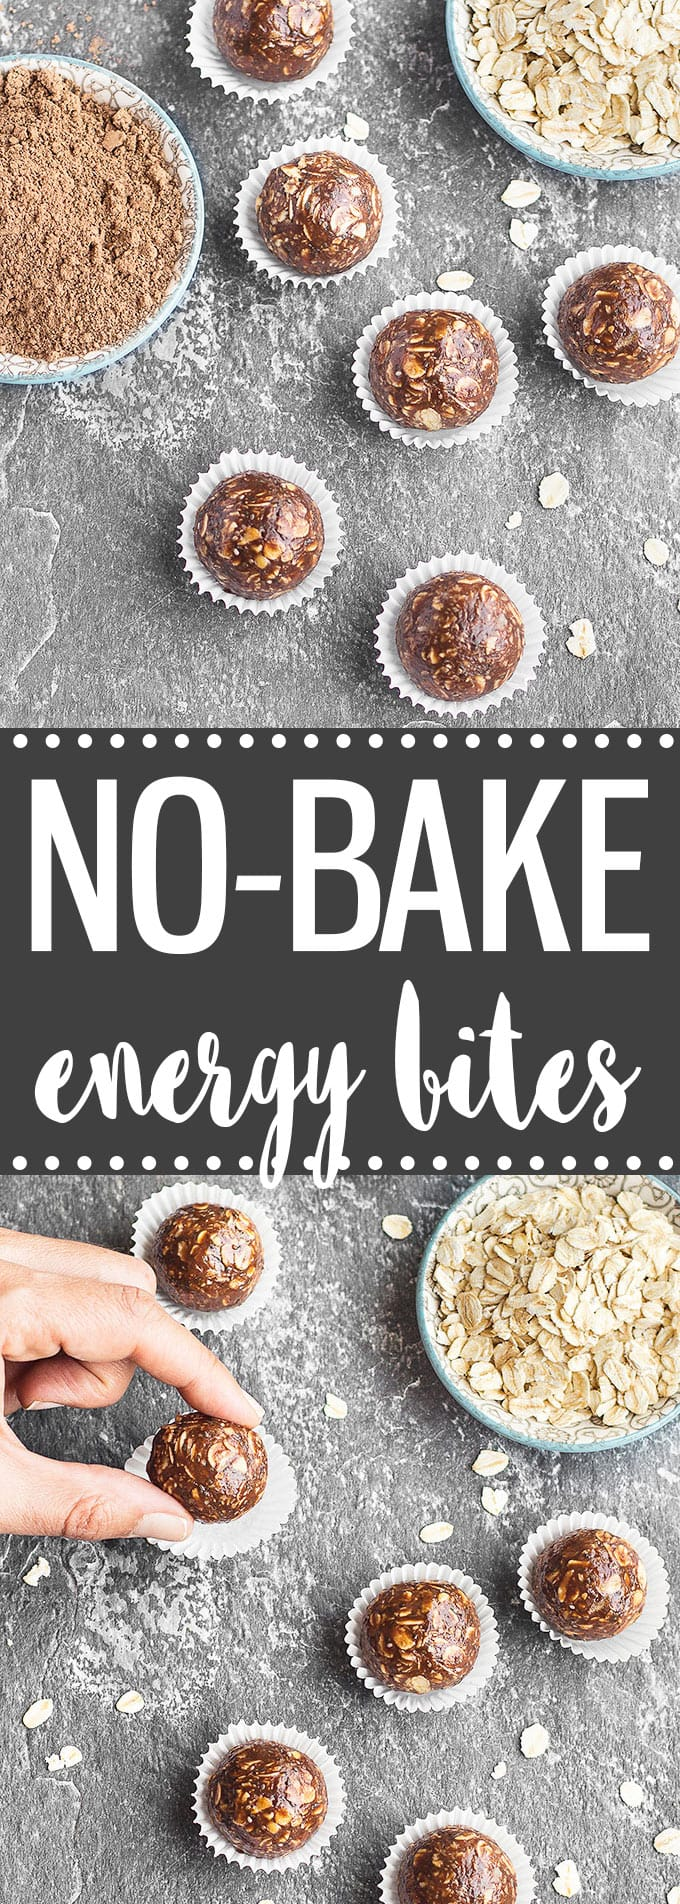 No-Bake Chocolate Peanut Butter Energy Bites -  a quick, healthy and super easy breakfast or snack on-the-go.